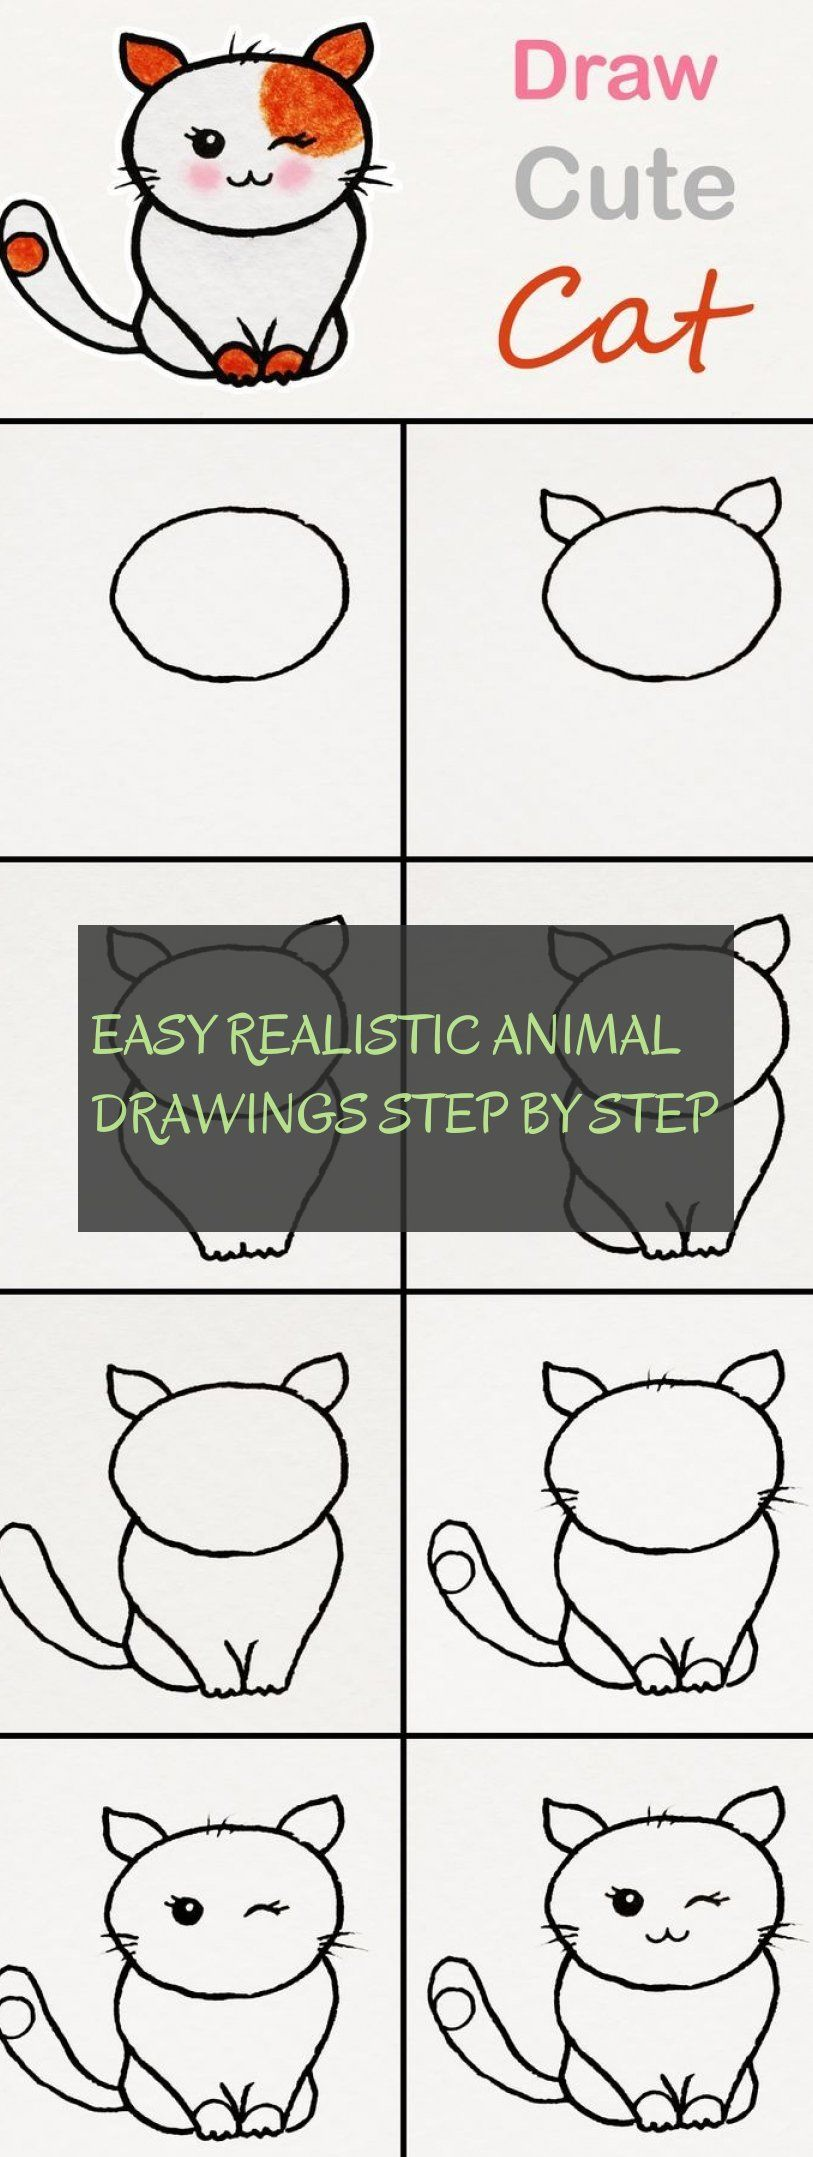 easy realistic animal drawings step by step